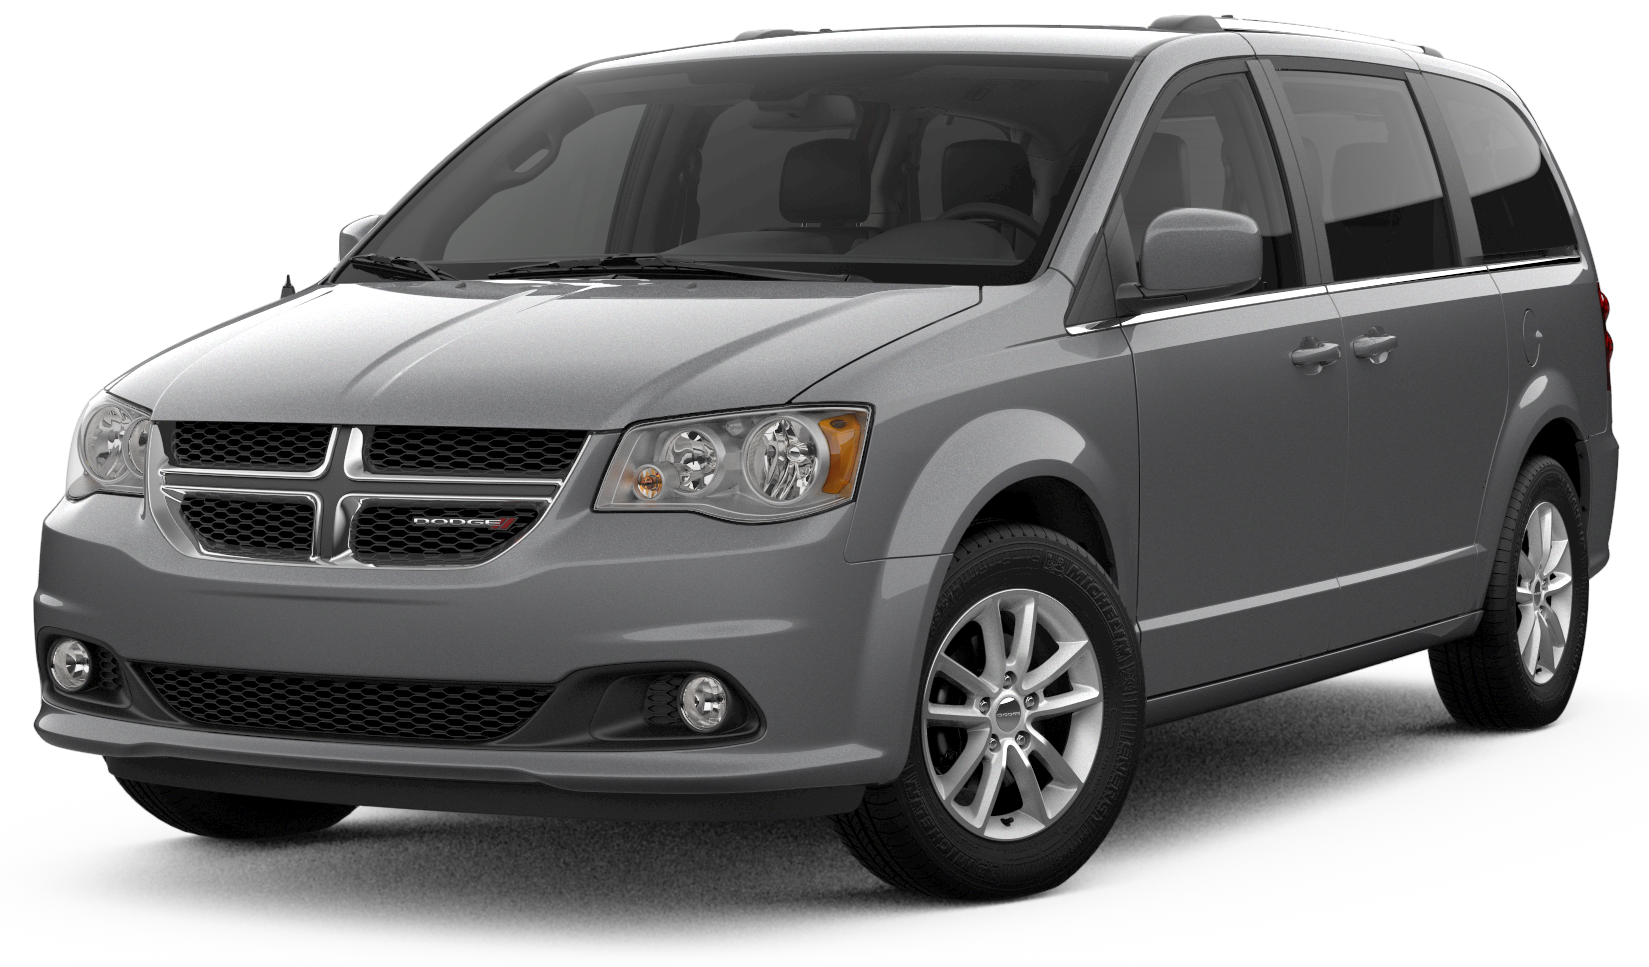 Review & Compare Dodge Caravan at Larry H. Miller Dodge Ram Peoria